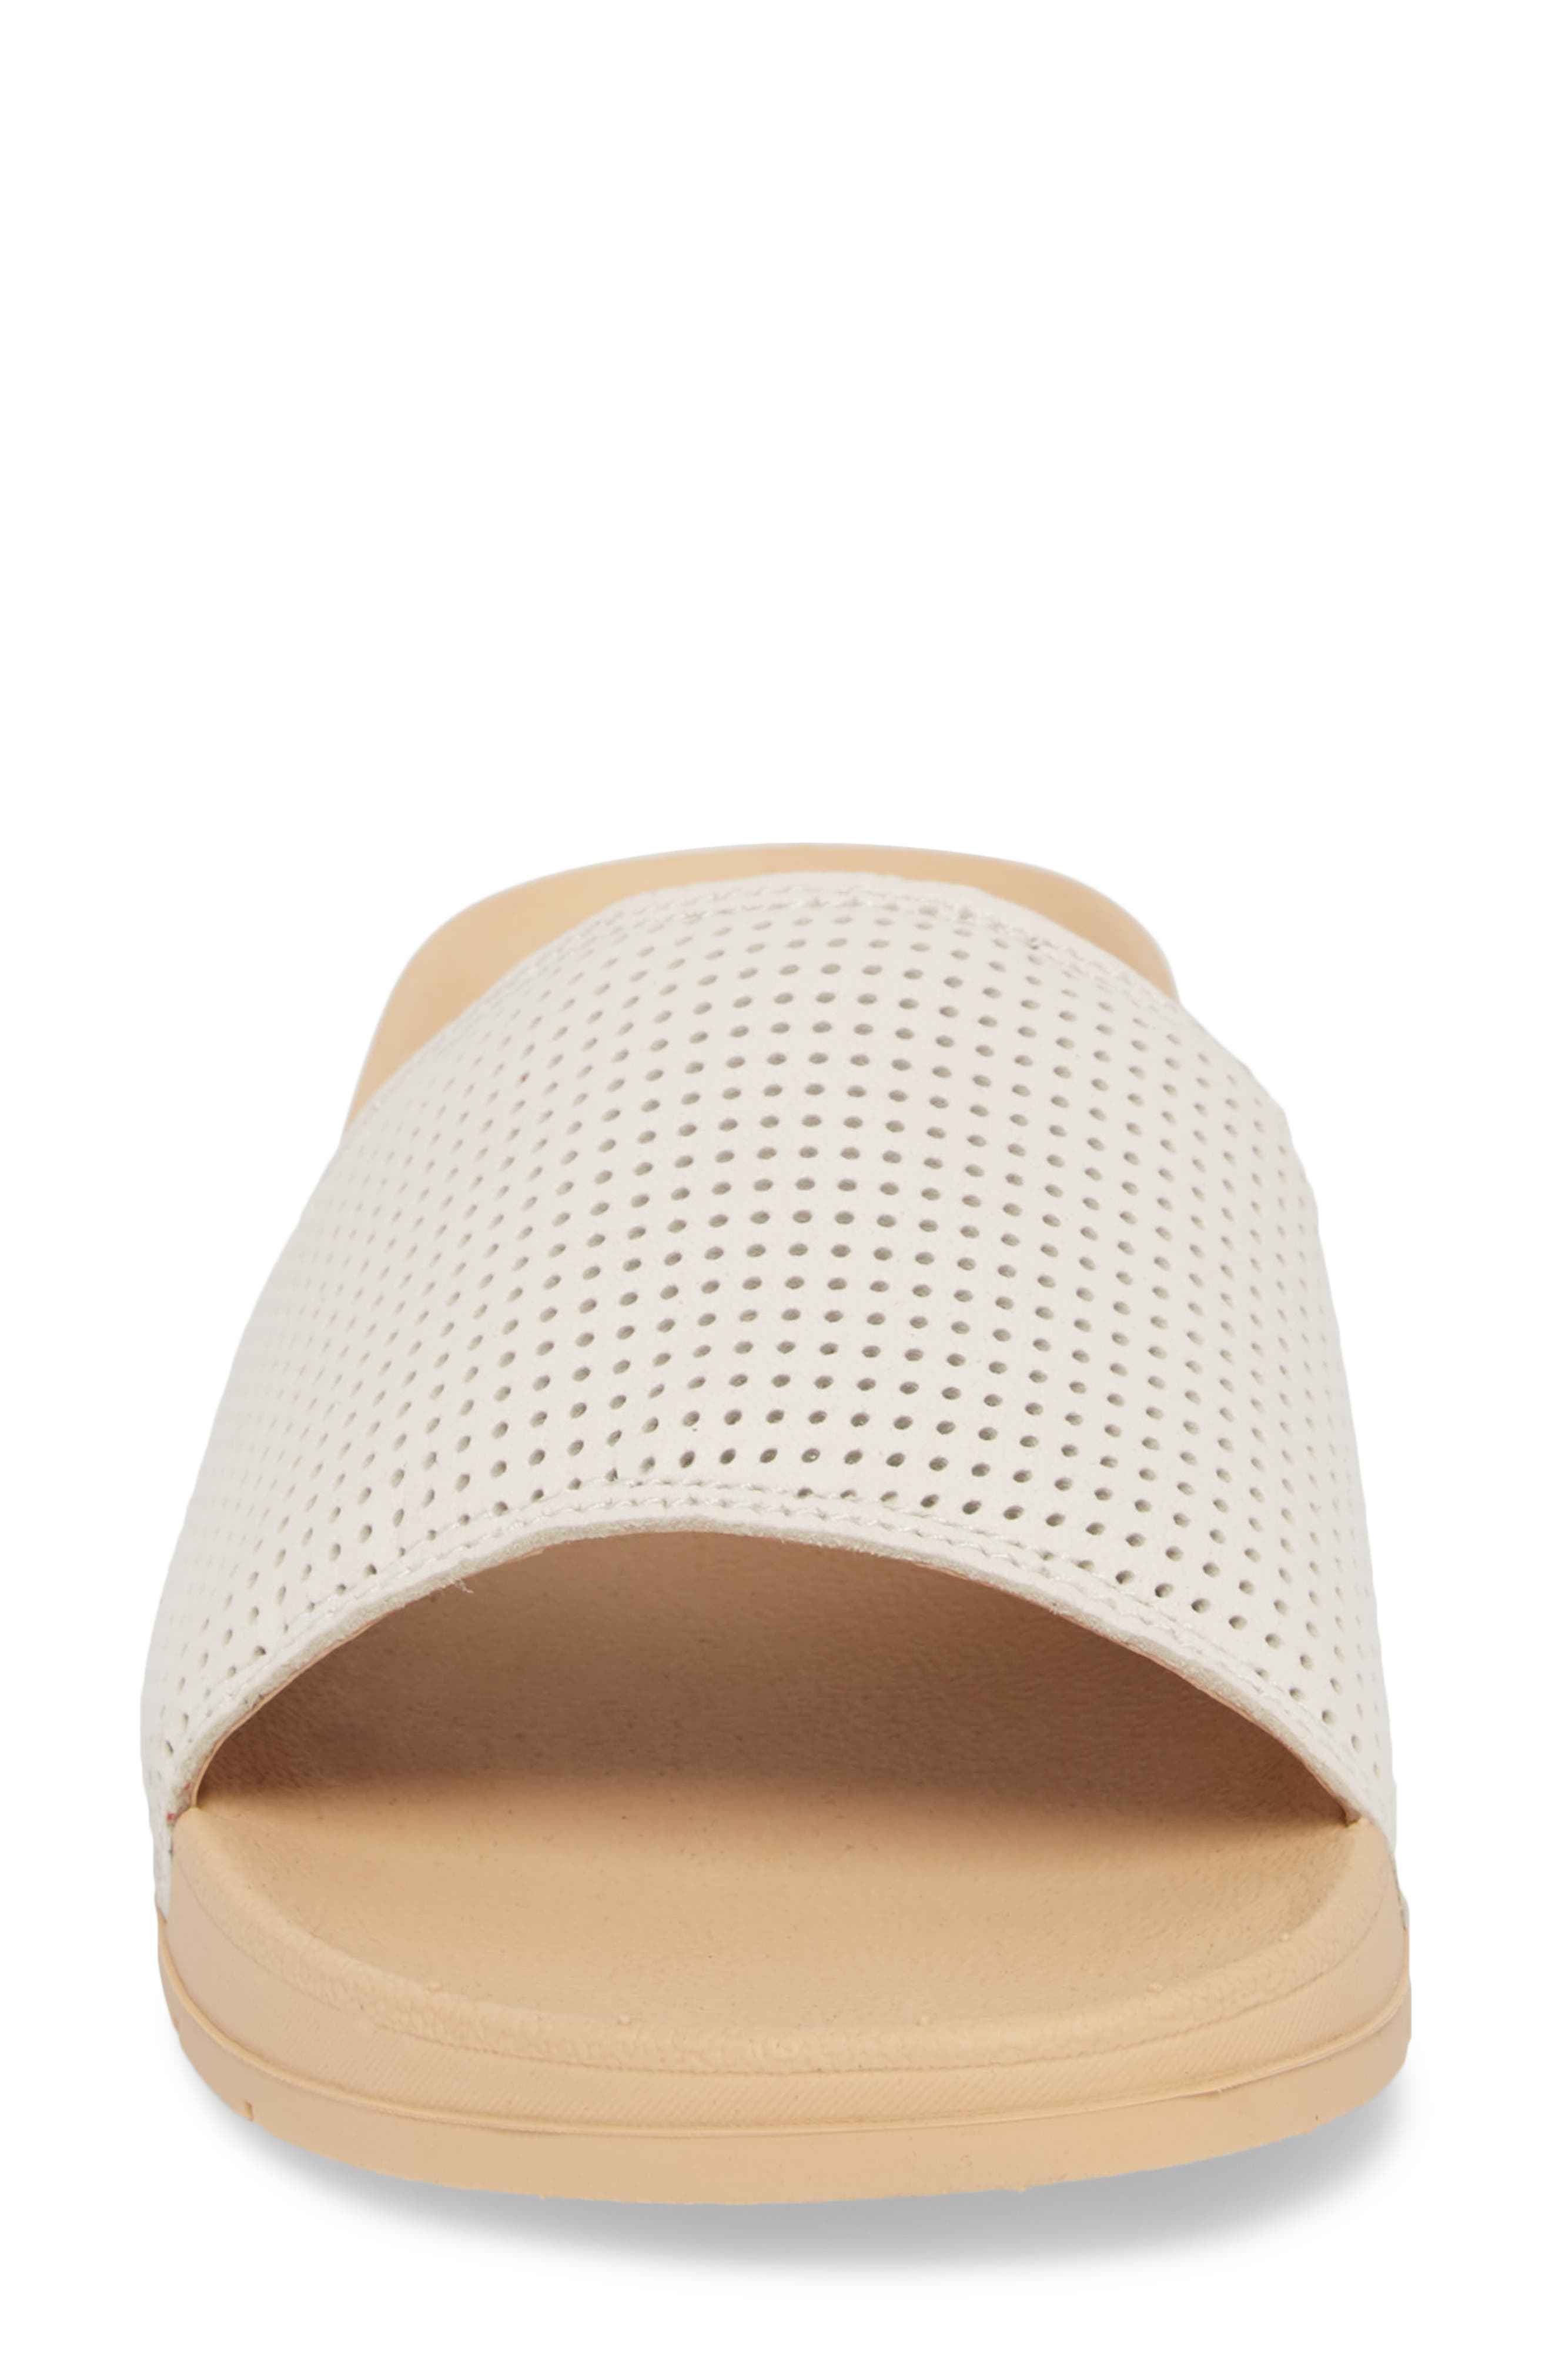 x Designlovefest Bliss Slide Sandal,                             Alternate thumbnail 4, color,                             CREAM/ TAN